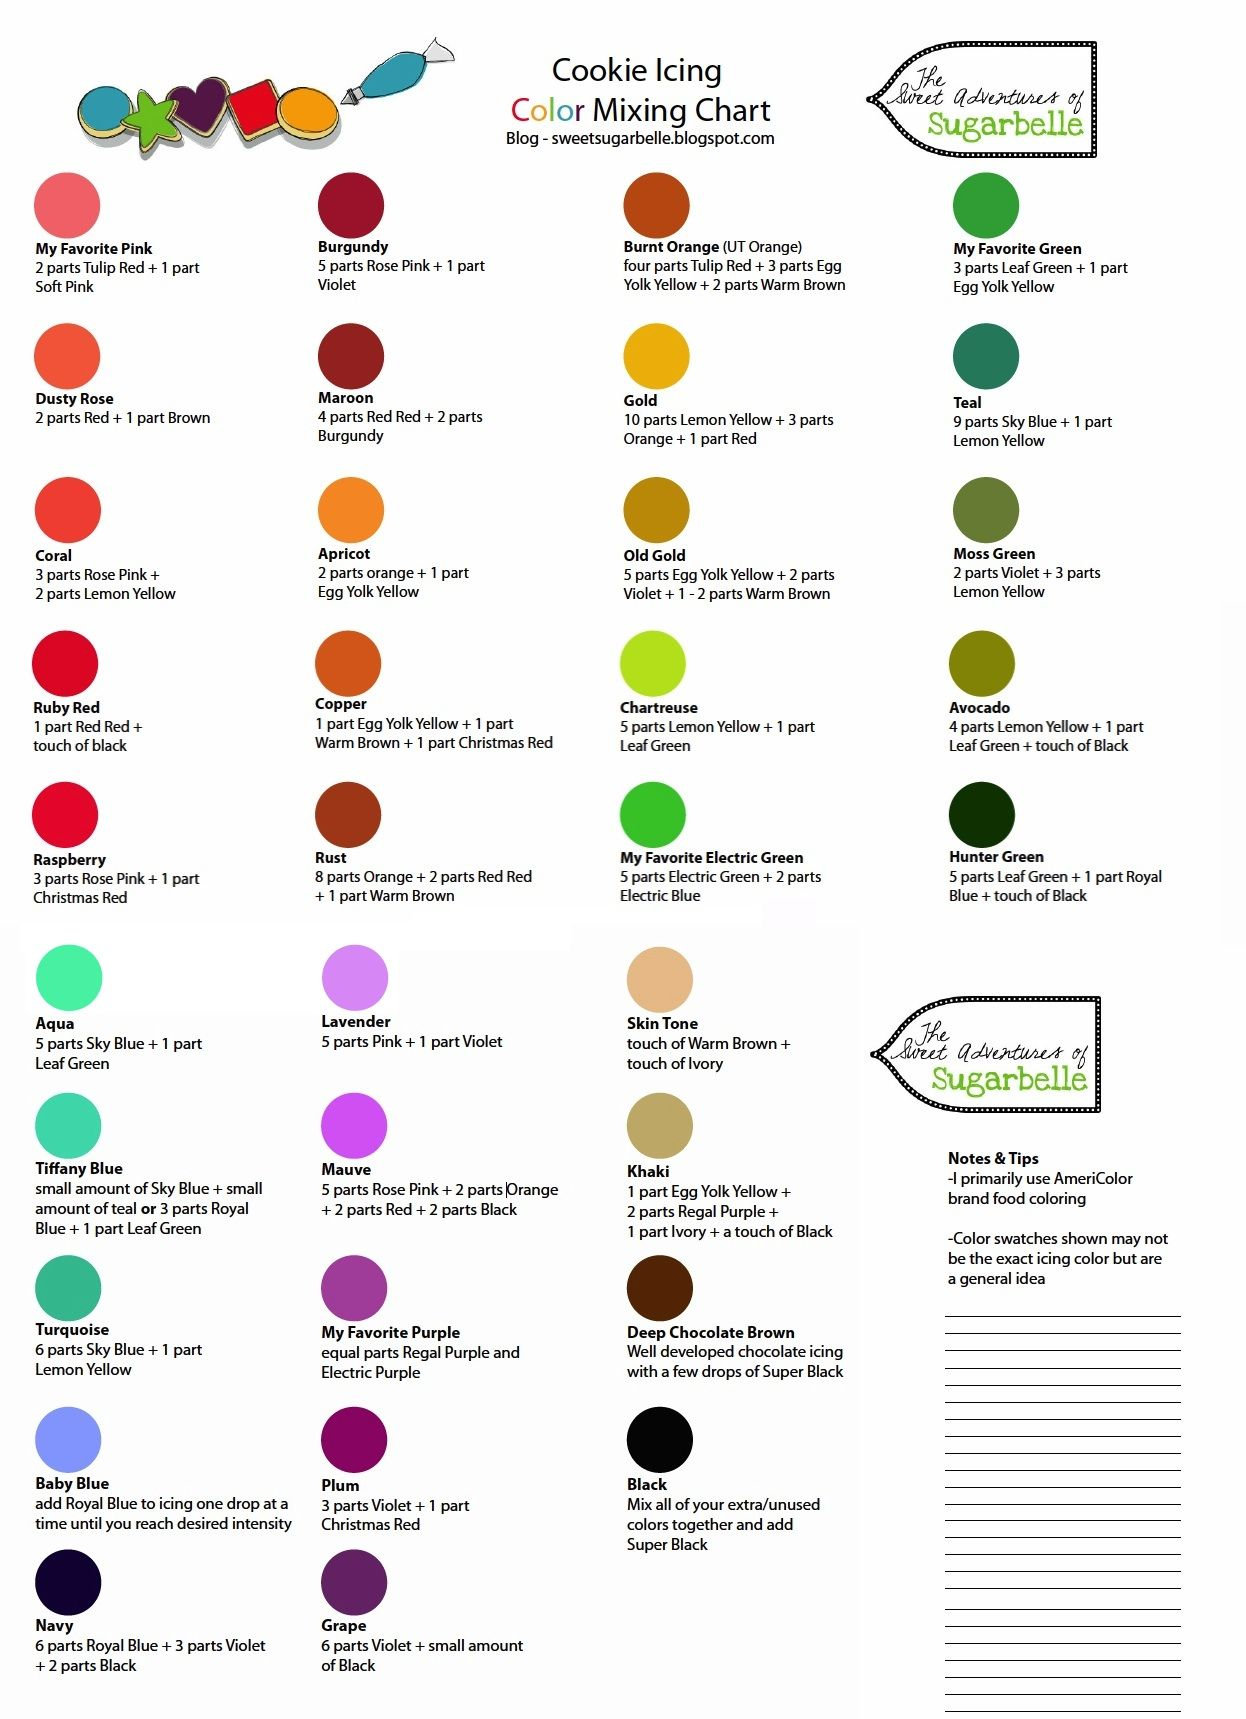 Cookie icing color mixing chart courtesy of sweetsugarbelle also to use    guessing wilton paste colors rh pinterest